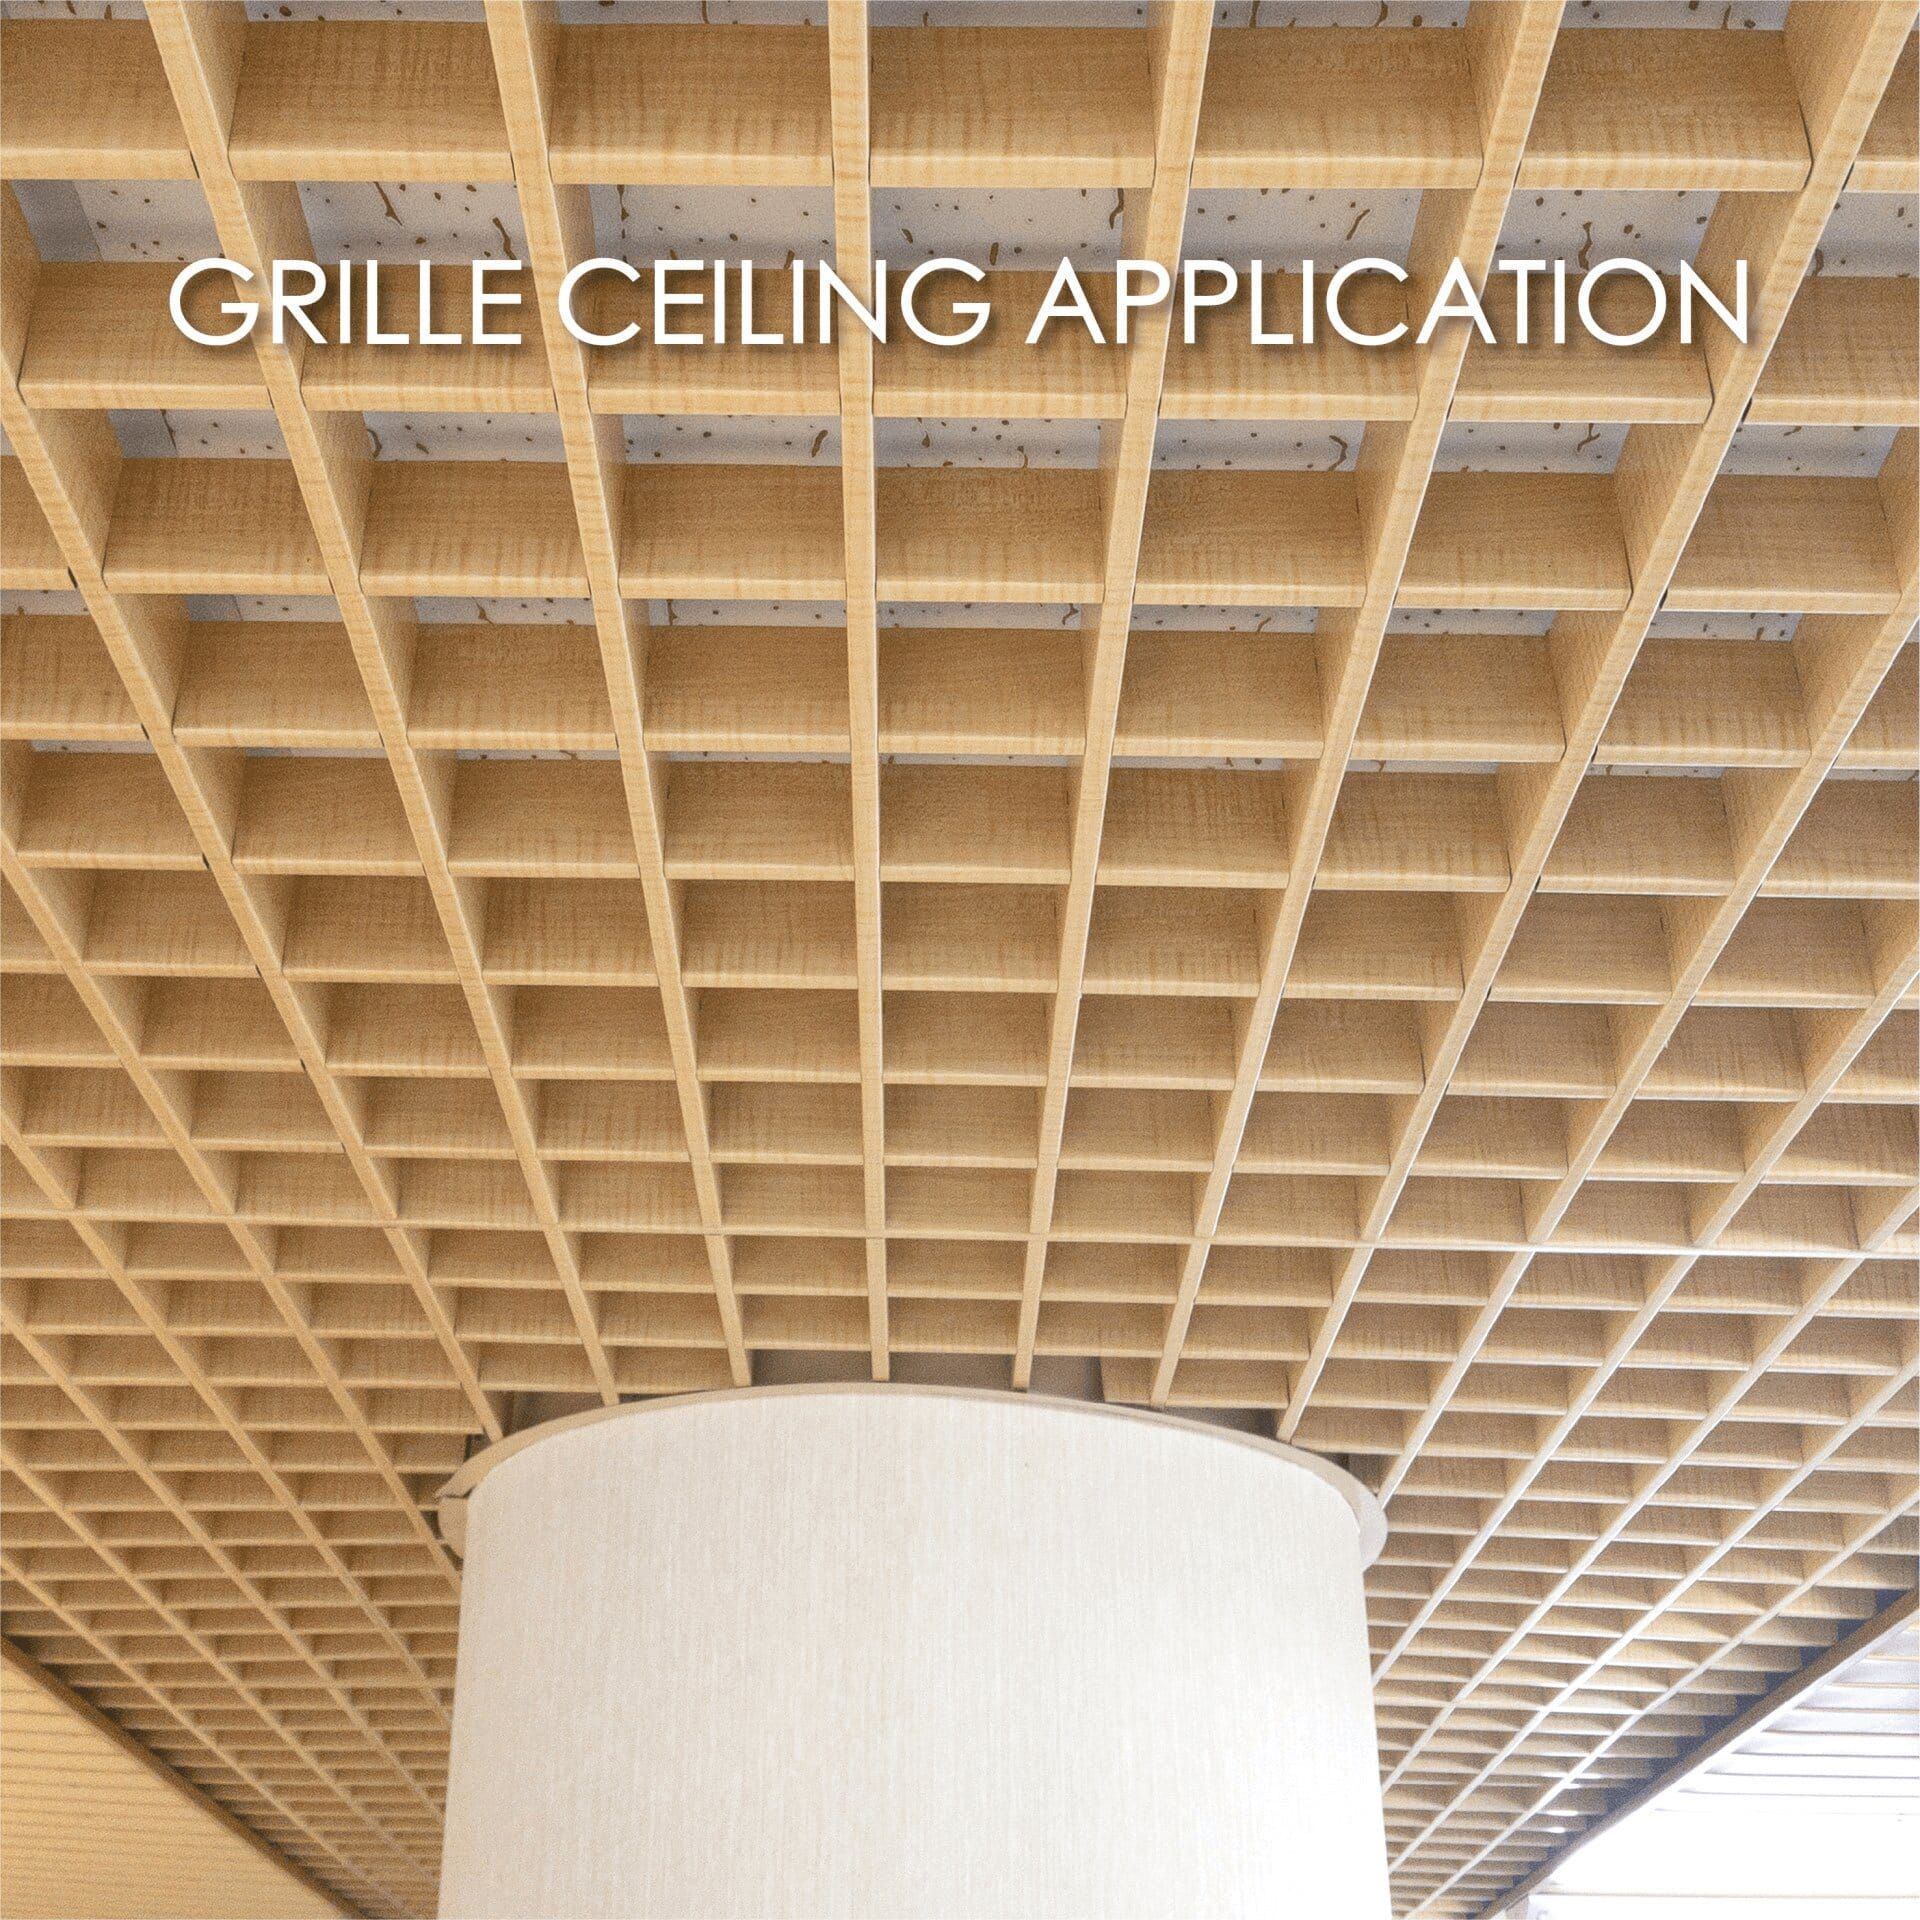 Using laminated metal for grille ceilings adds decorativeity and durability